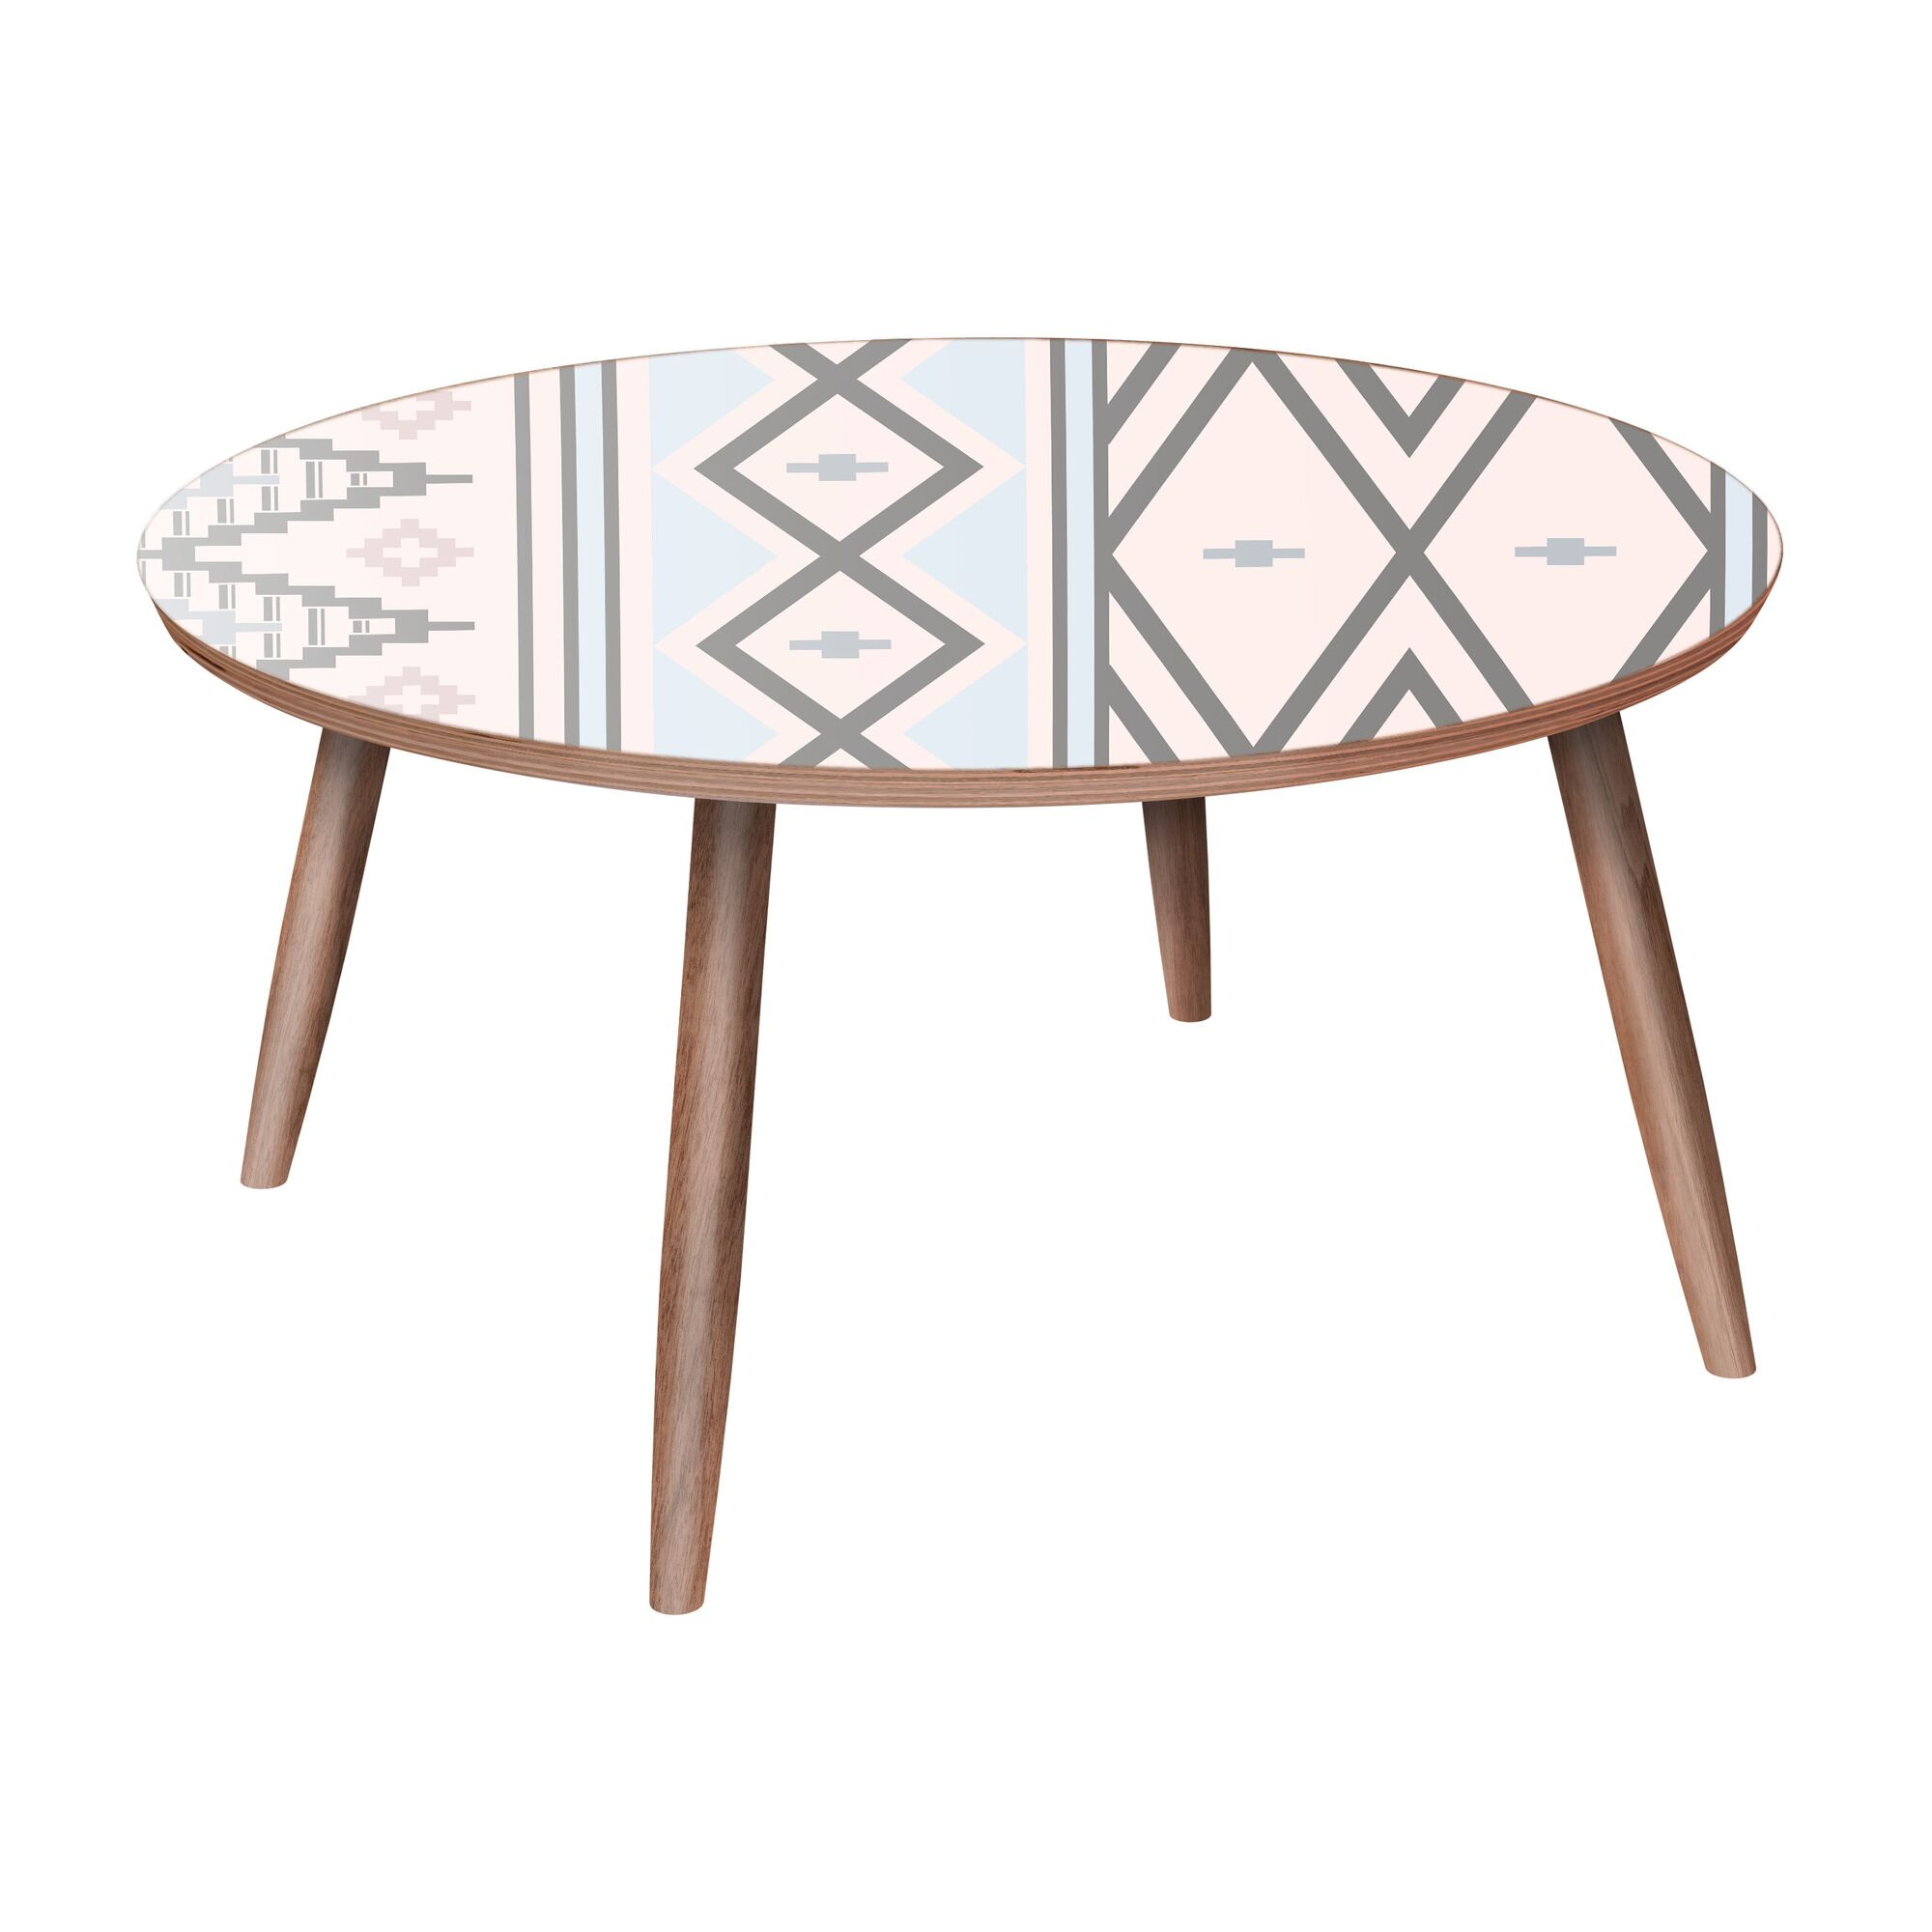 Vandoren Coffee Table Table Base Color: Walnut, Table Top Color: Red